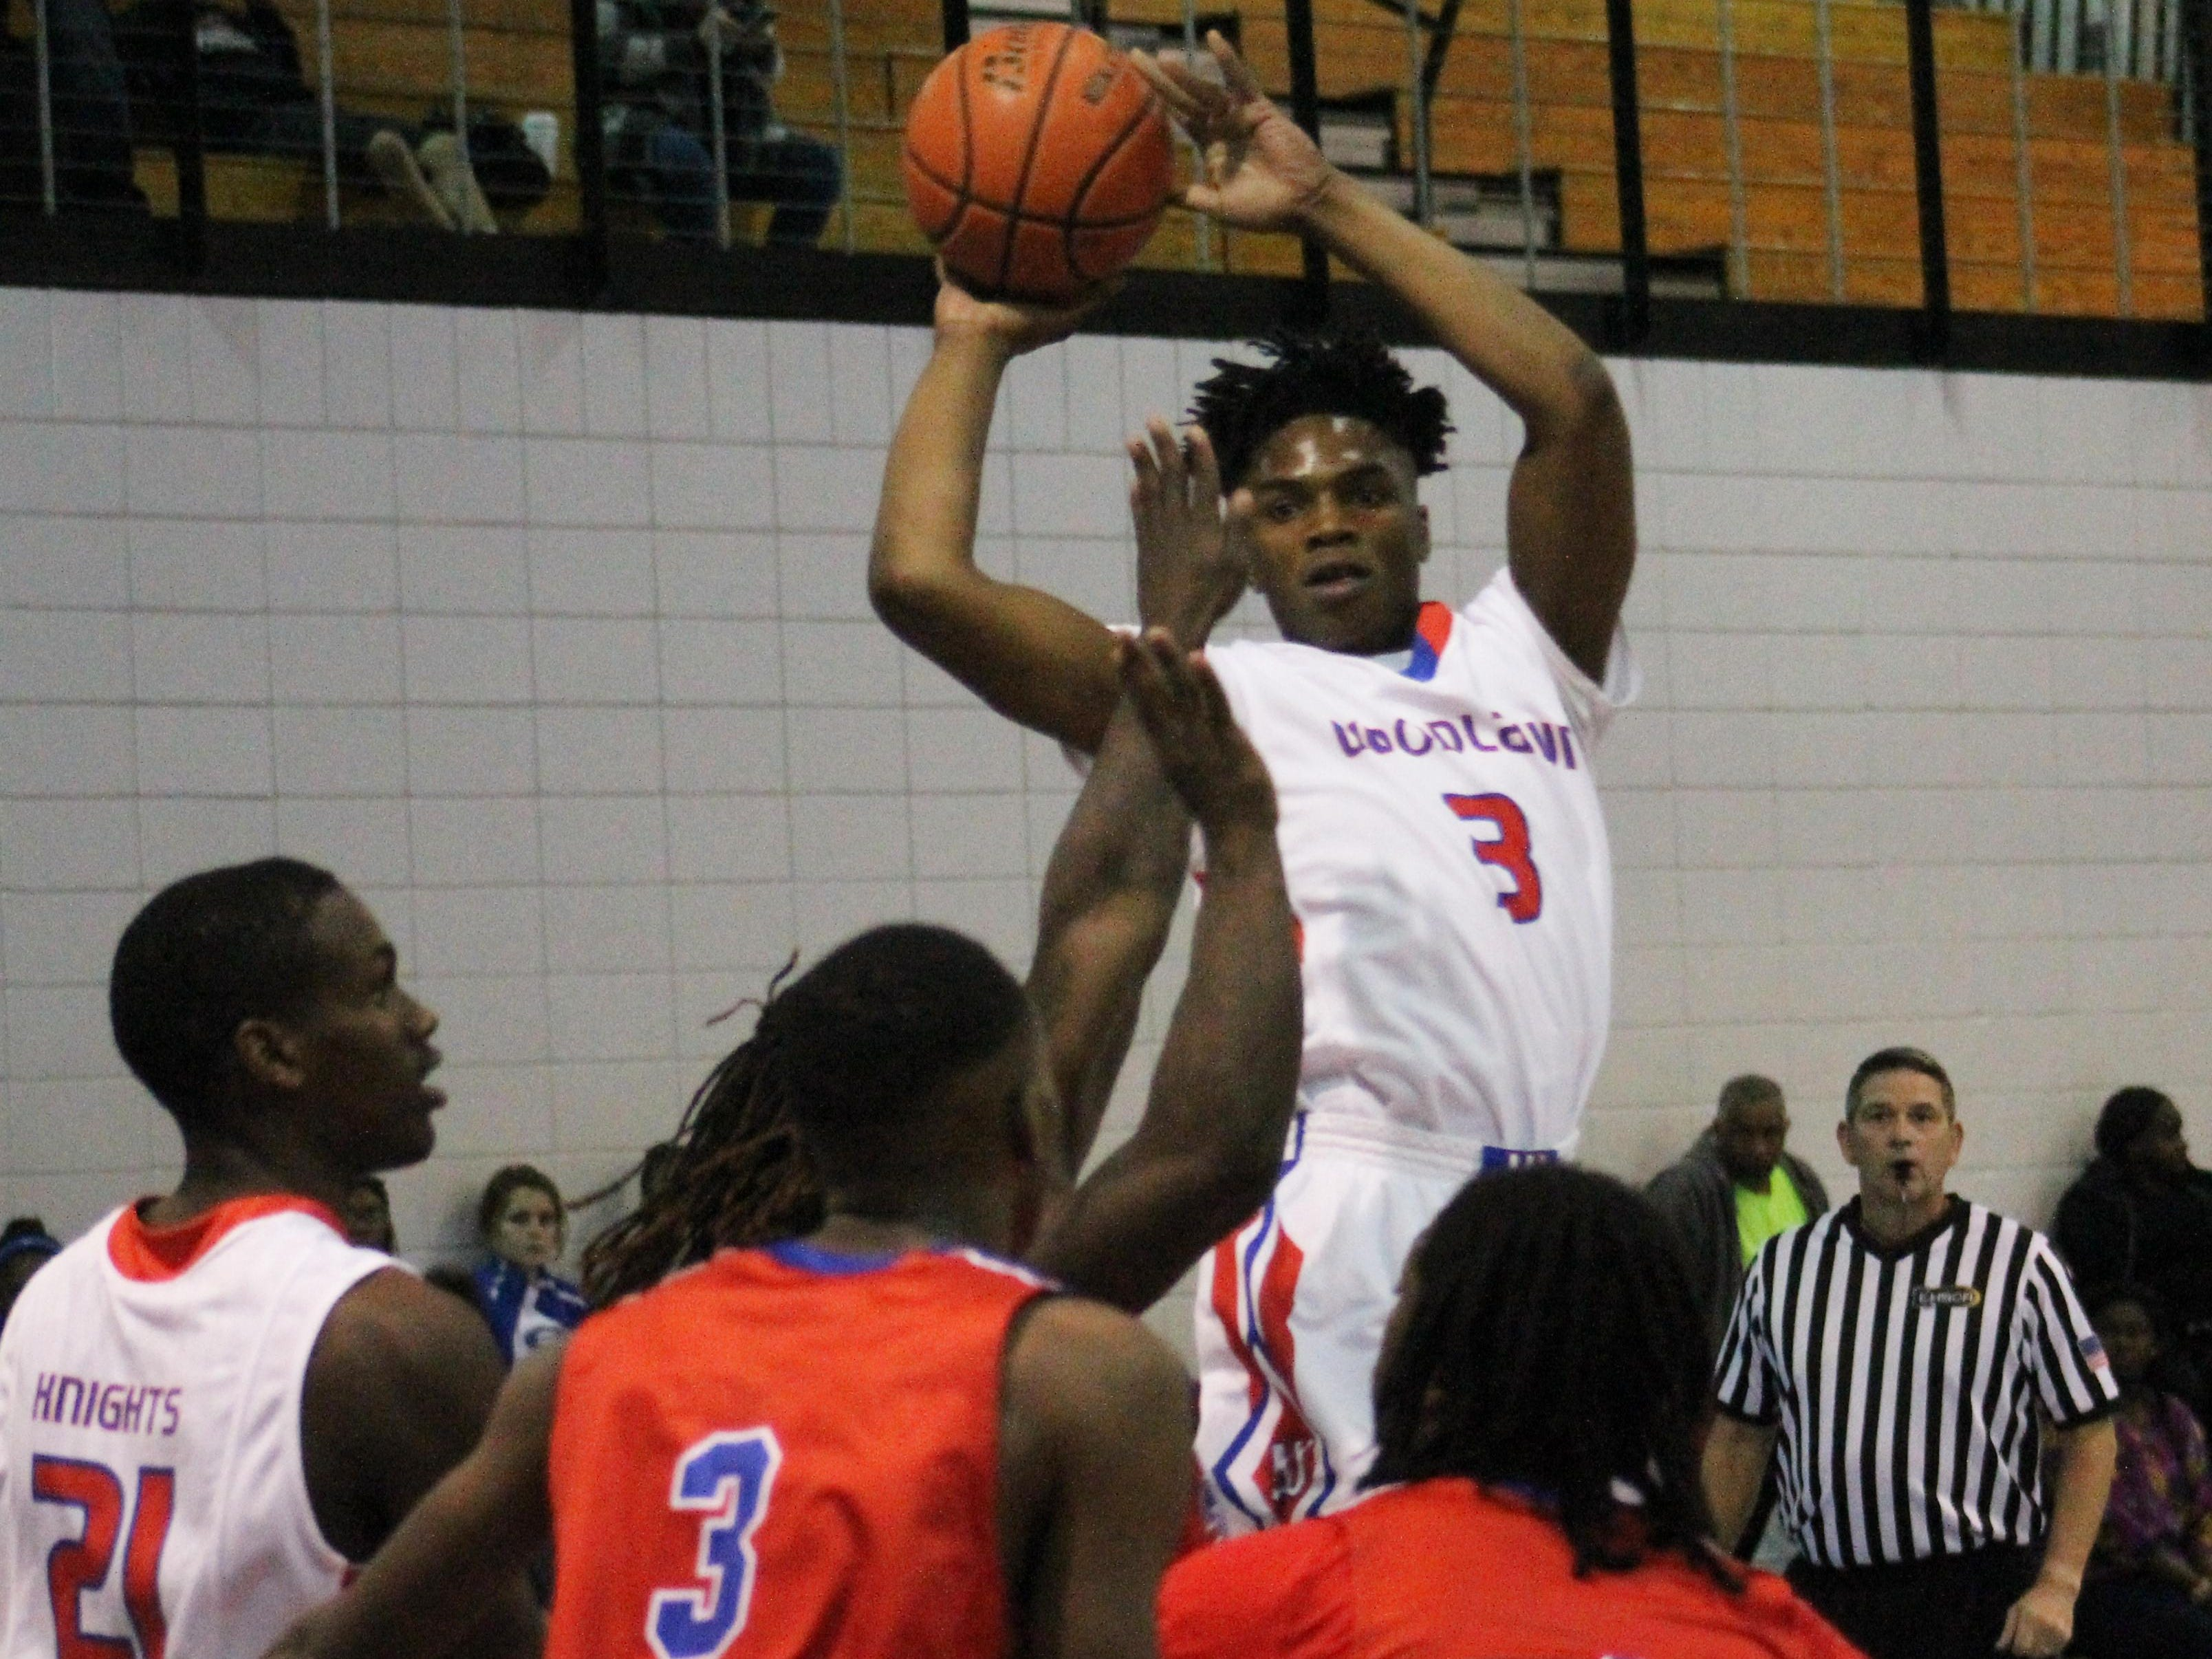 Willie Reed (3) jumps to pass for Woodlawn against Evangel during Thursday night's boys basketball game in Minden.